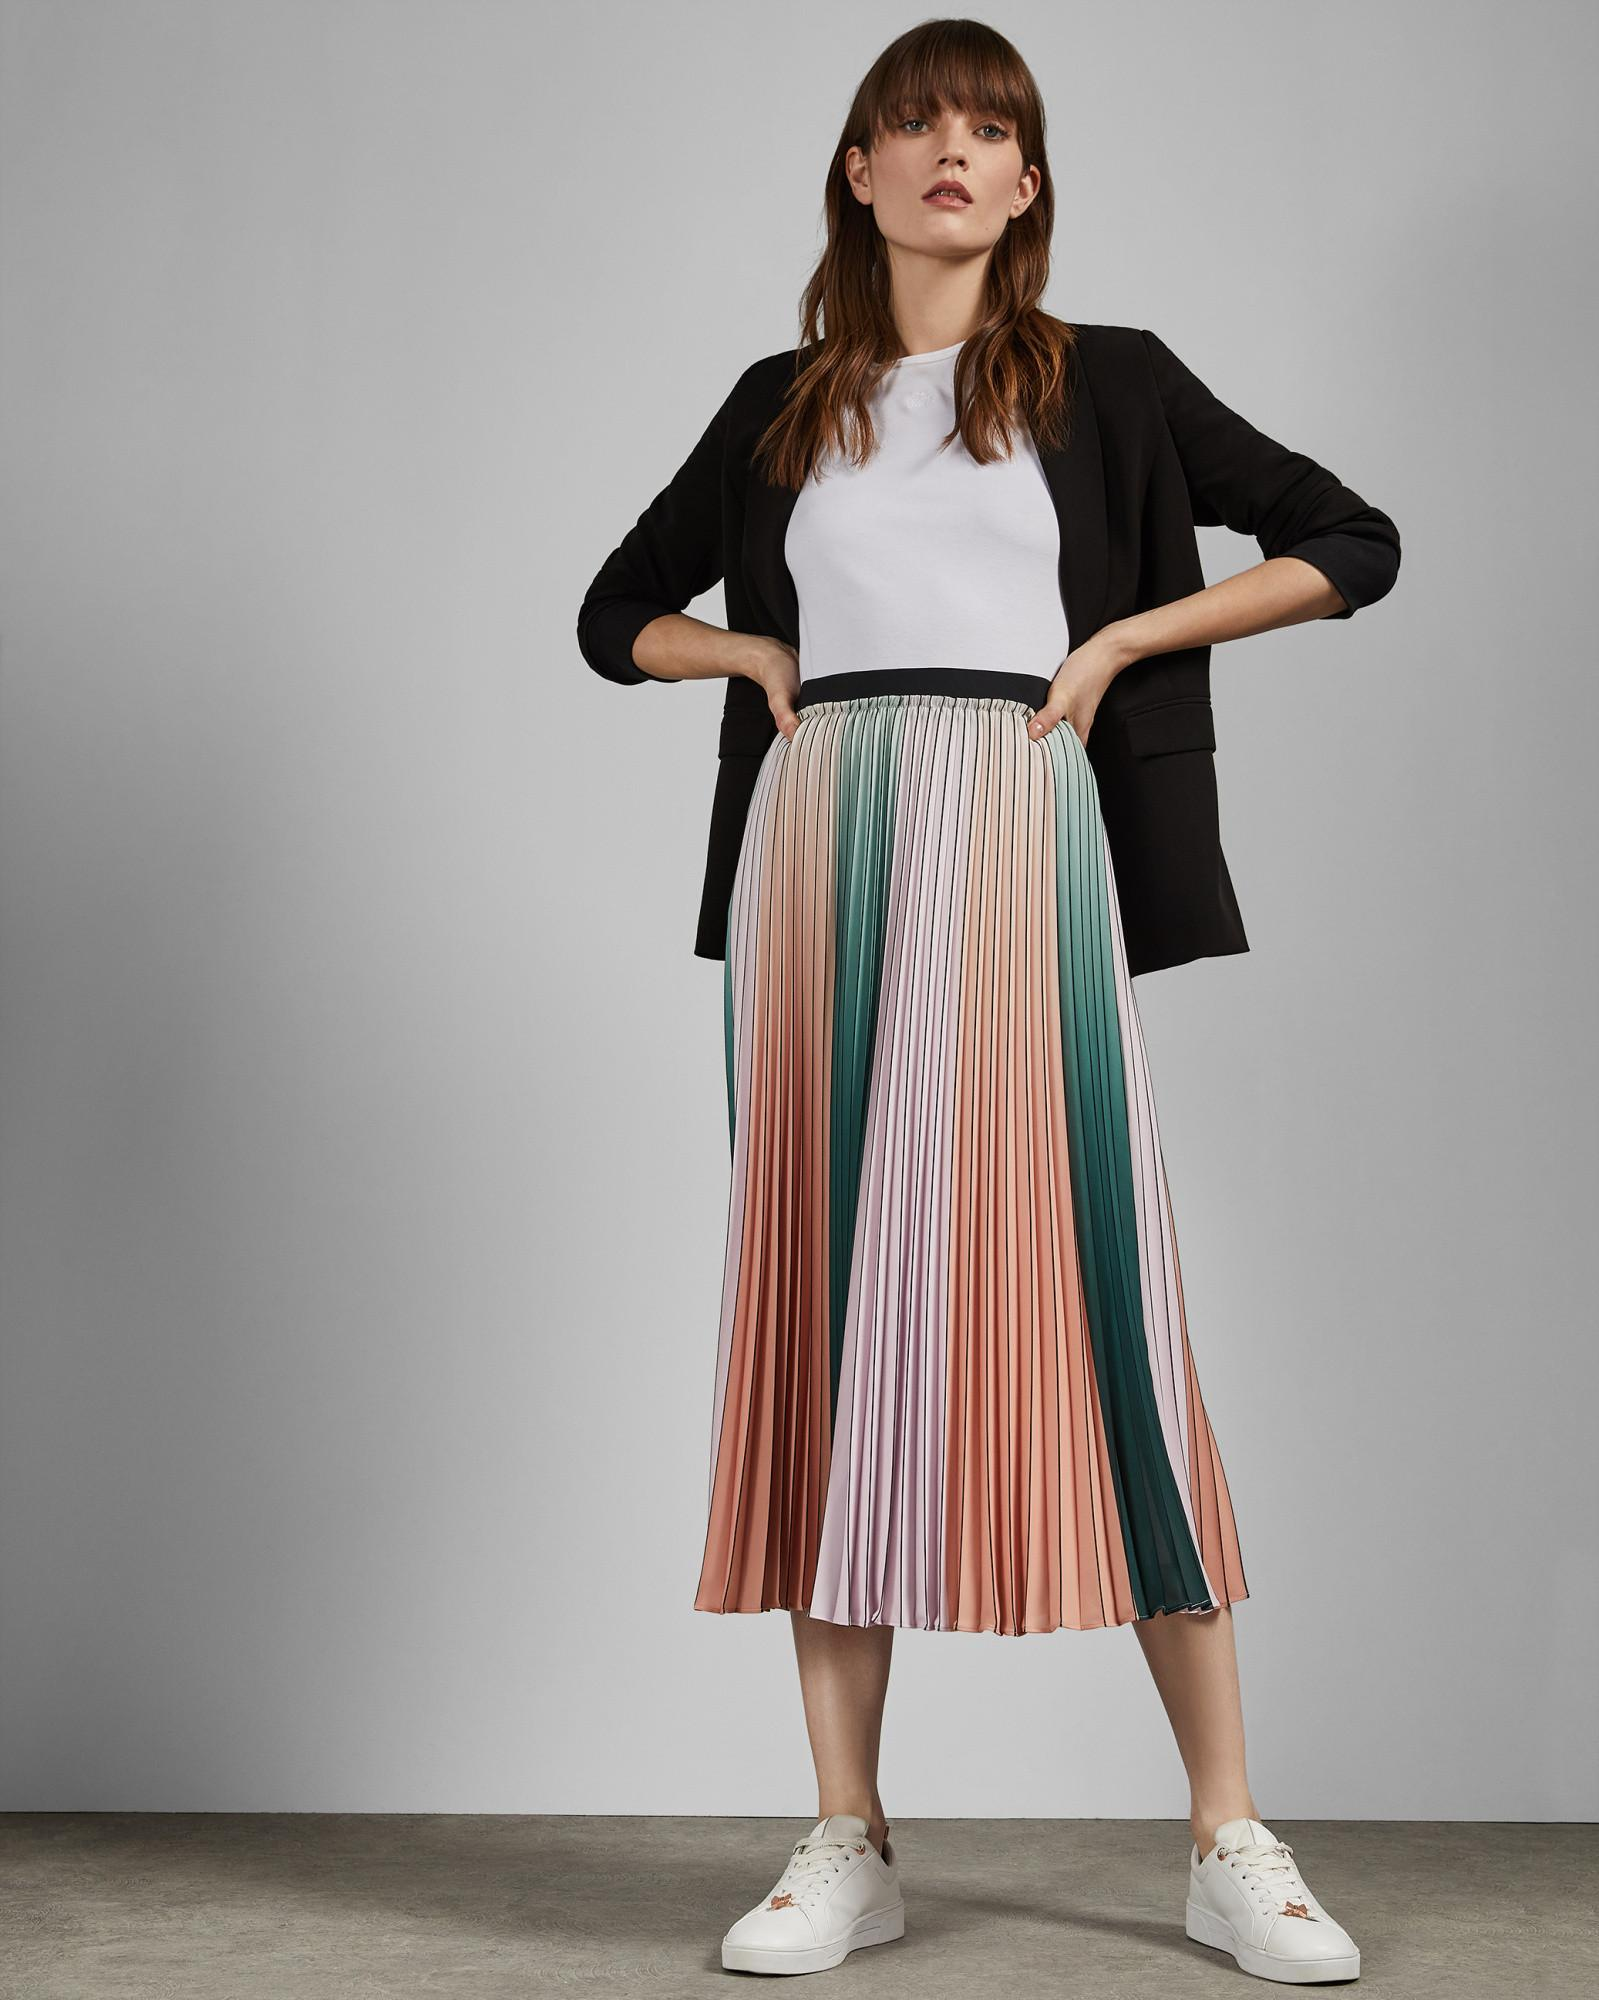 c4cafcc15 Lyst - Ted Baker Selmma Stripe Pleat Midi Skirt in Purple - Save 30%